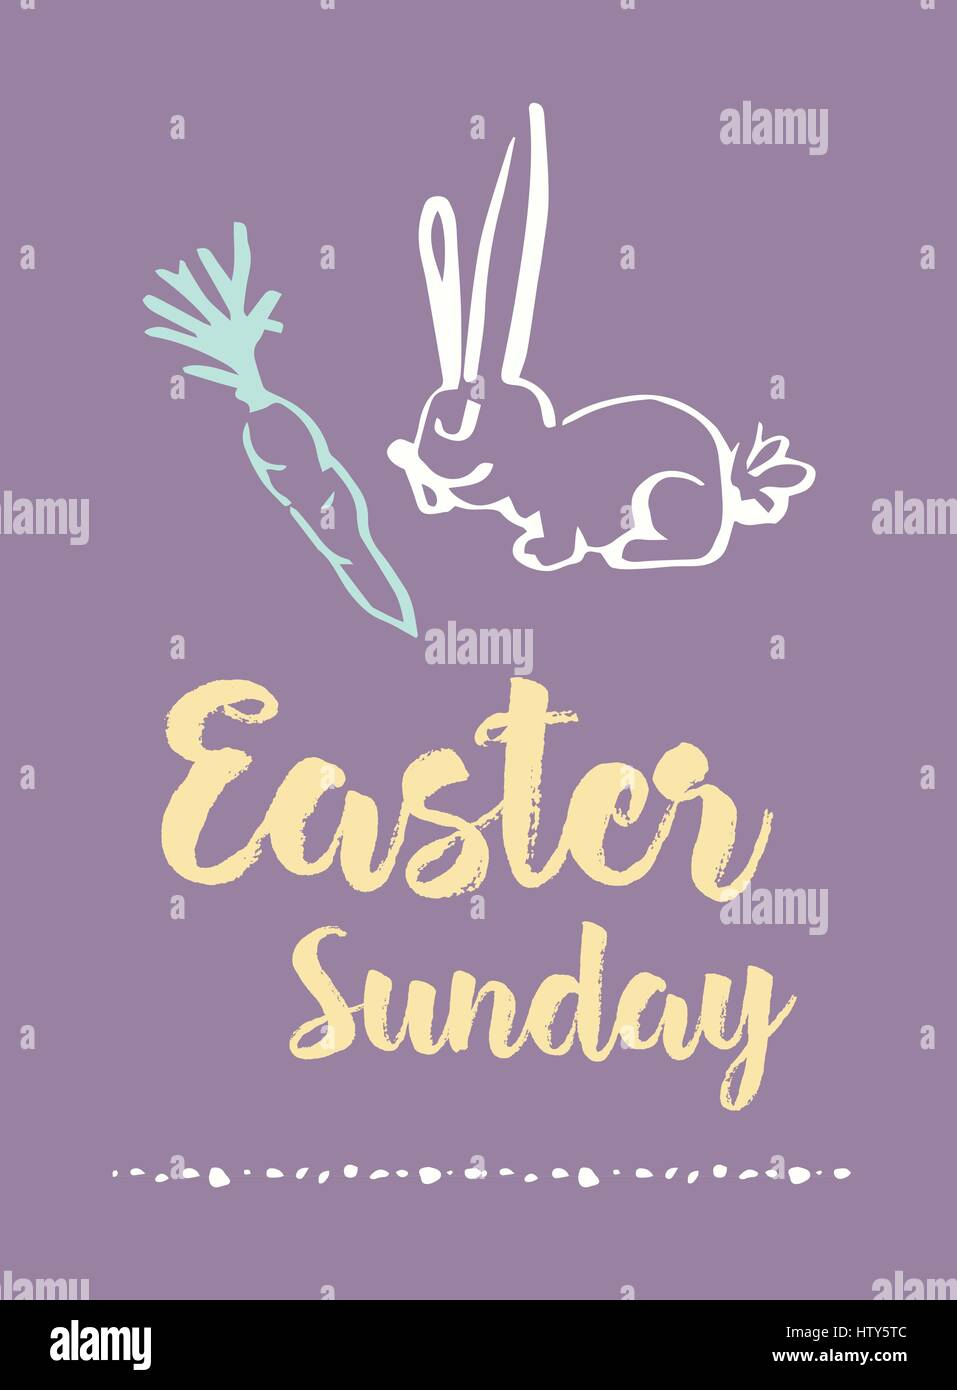 Easter sunday stock vector images alamy vector of greeting card with easter sunday message stock vector m4hsunfo